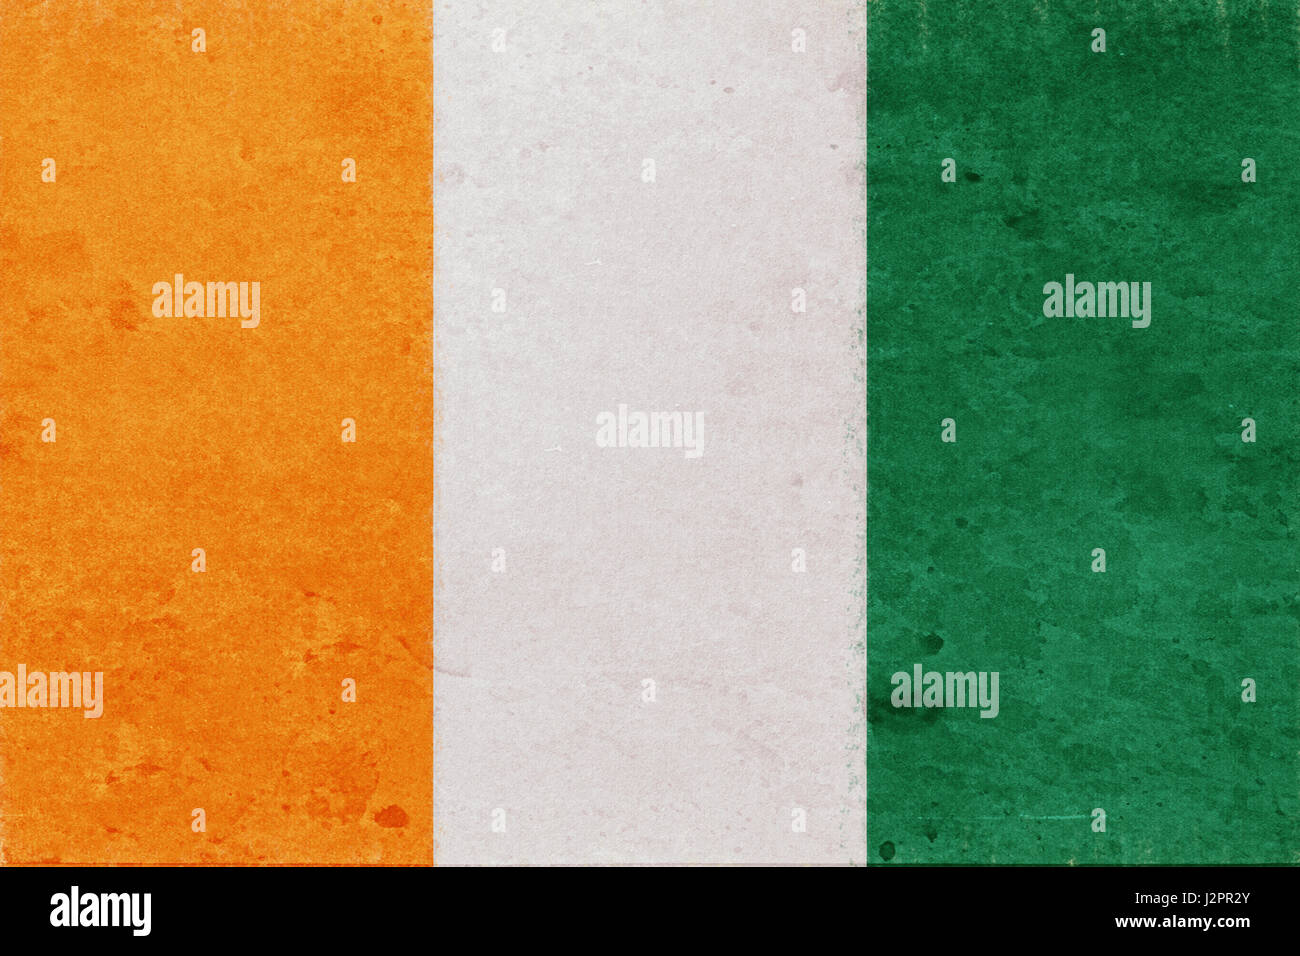 Illustration of the national flag of Cote d'Ivoire with a grunge look - Stock Image